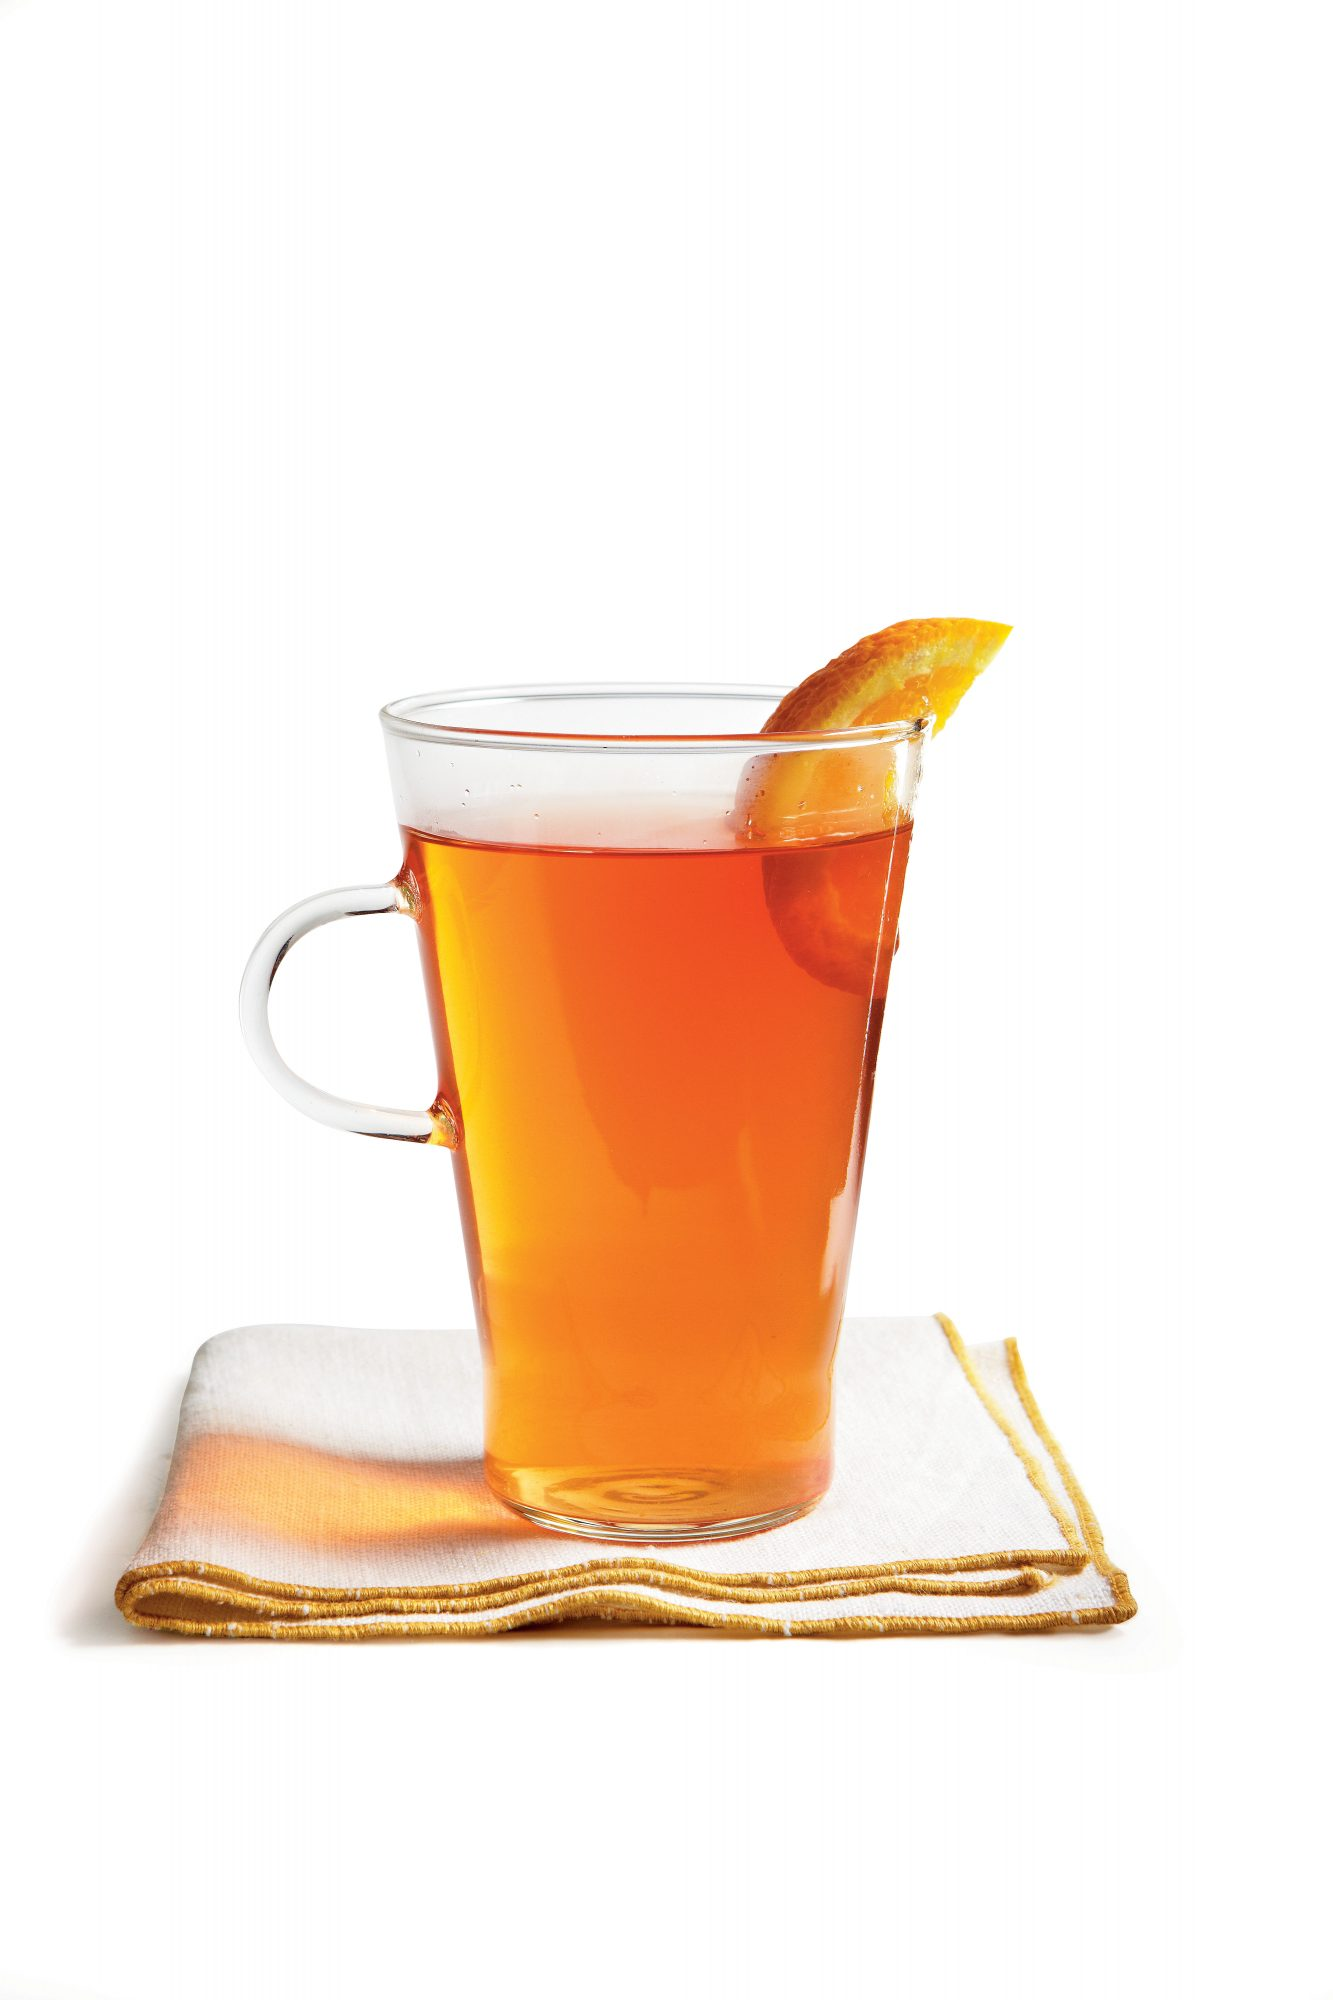 Orange Spiced Tea Recipe